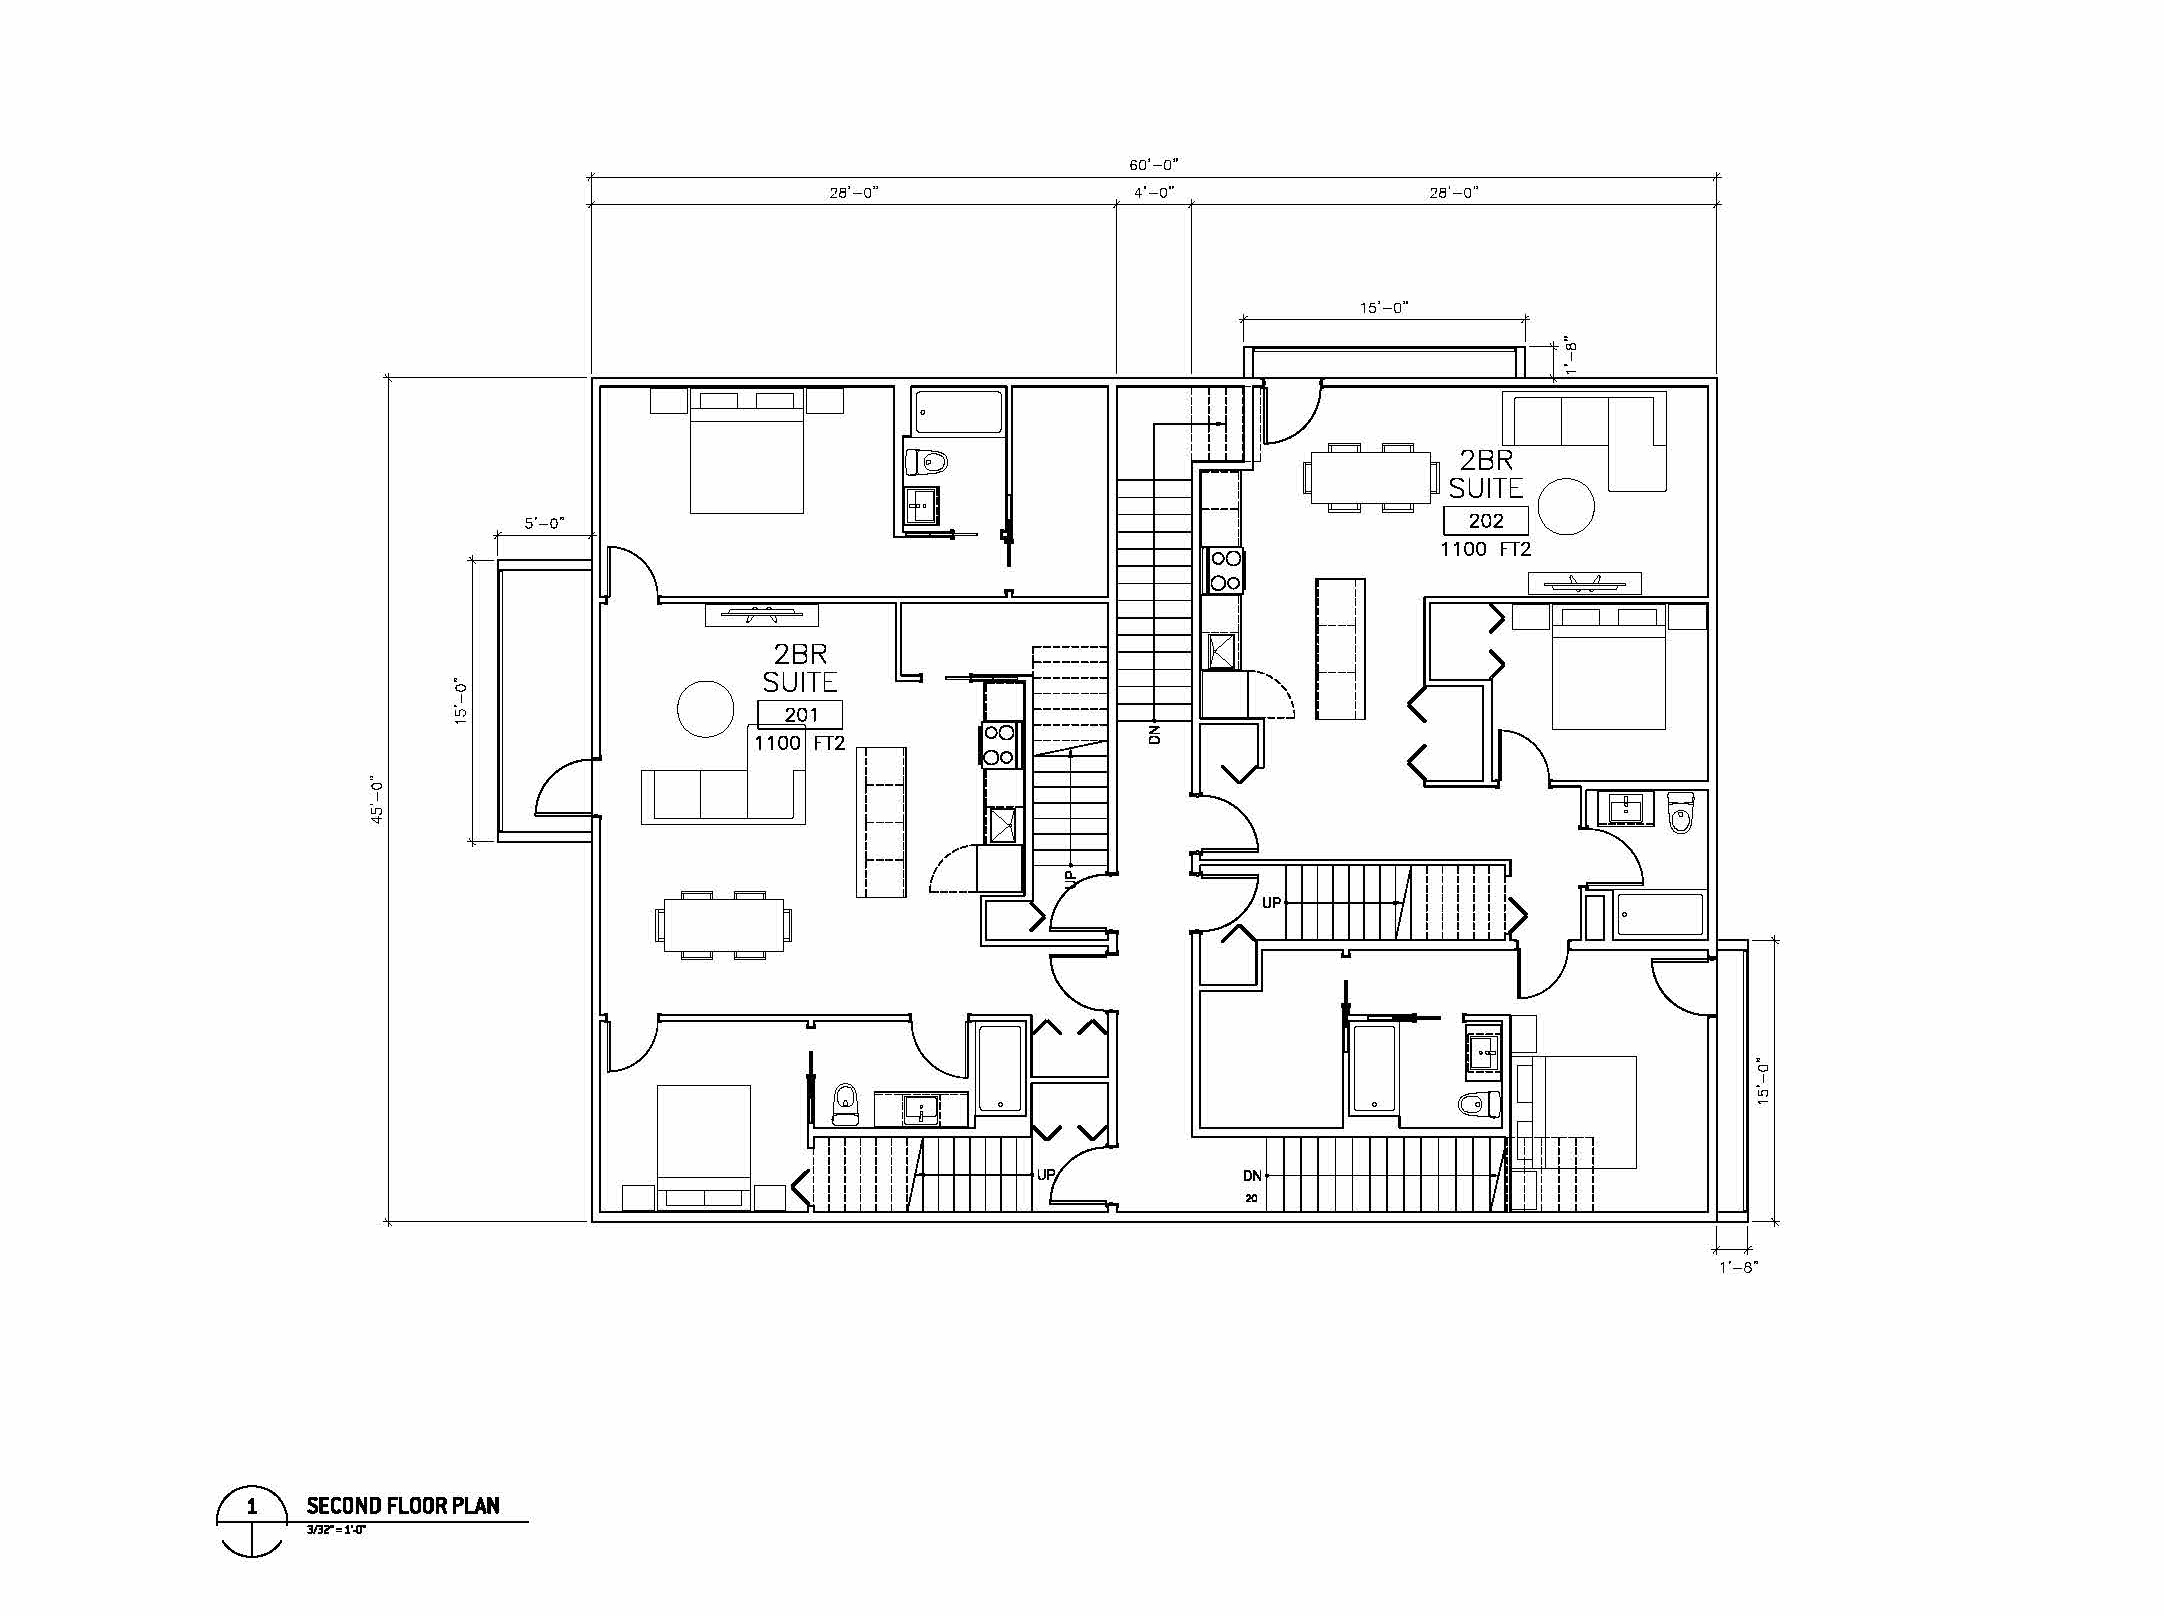 93_stannes_drawing-package_161129_Page_2.jpg